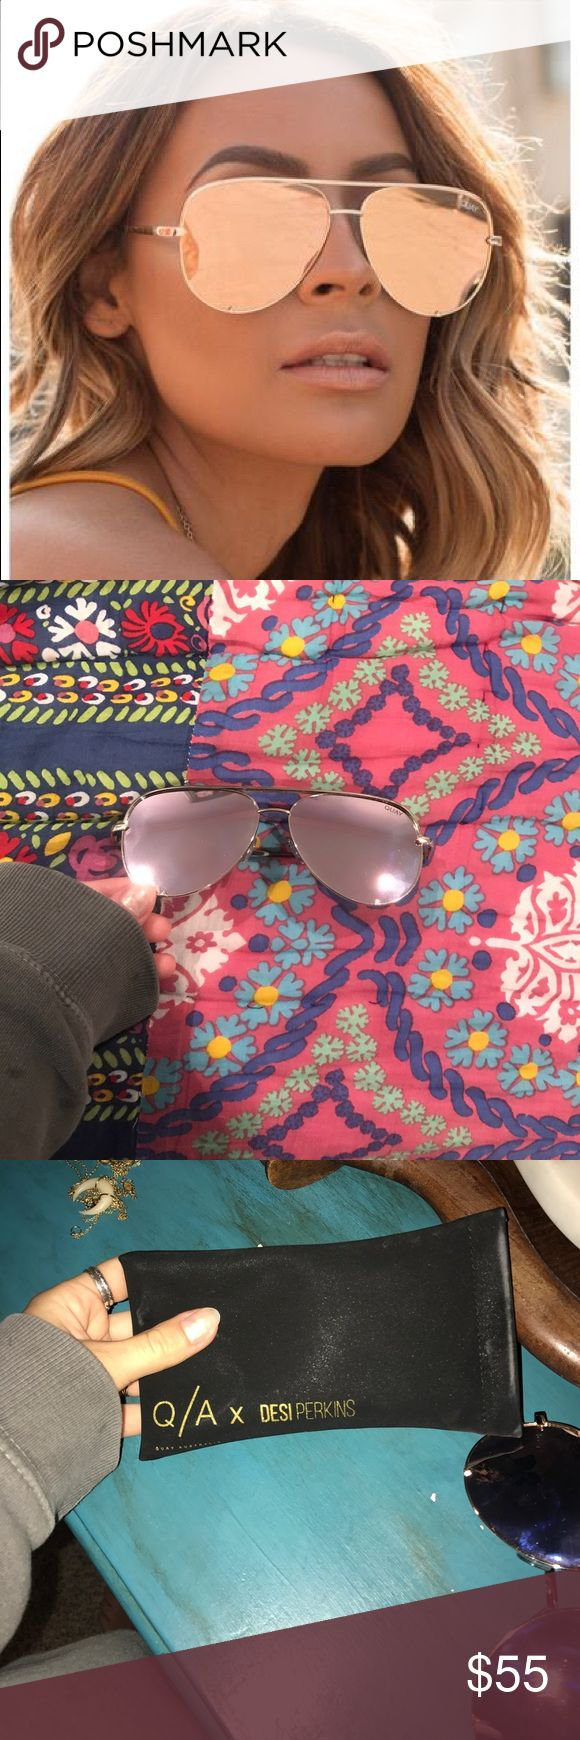 Quay High Key sunglasses gold Quay Australia Brand. Women's gold high key sunglasses. Perfect sunglasses and comes with case. Purchased these and accadiently got the wrong color! Quay Australia Accessories Sunglasses